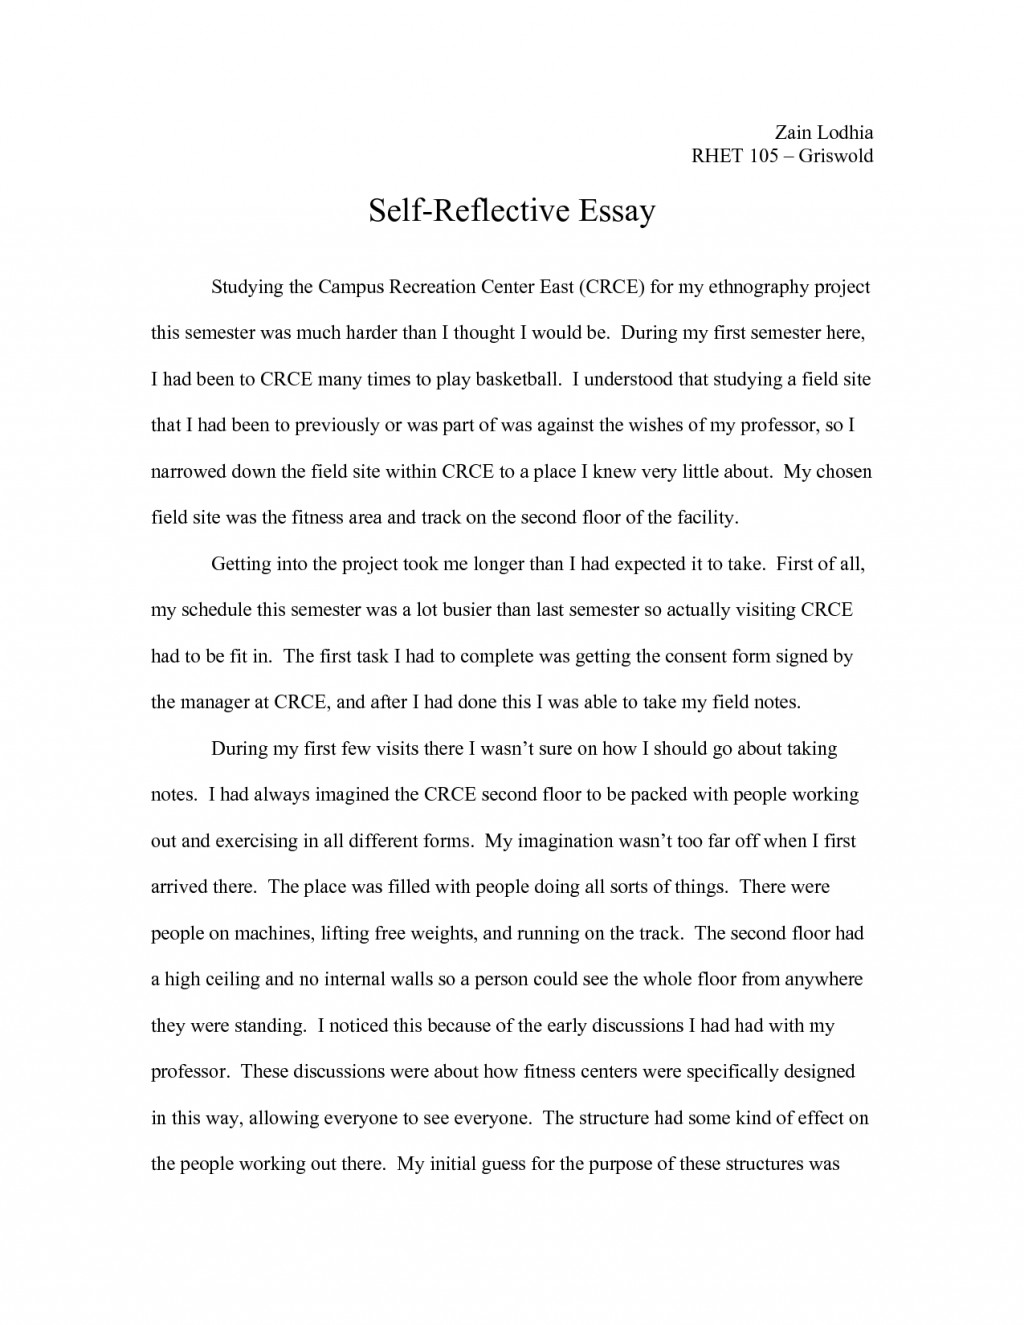 003 Qal0pwnf46 Reflective Essays Beautiful Essay Examples Personal Pdf About Life Format Large